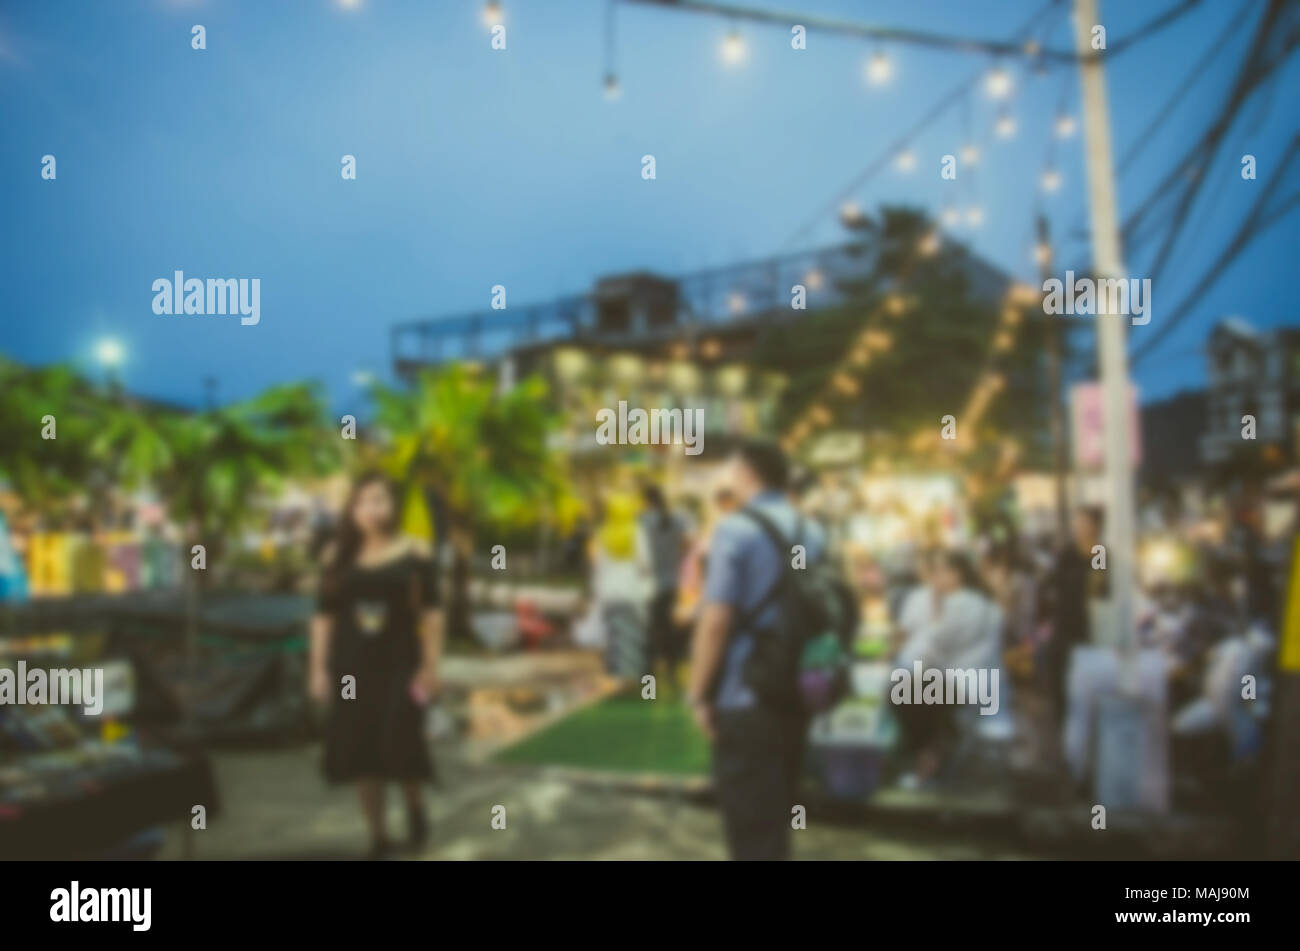 Blur Festival food night market for background usage. - Stock Image